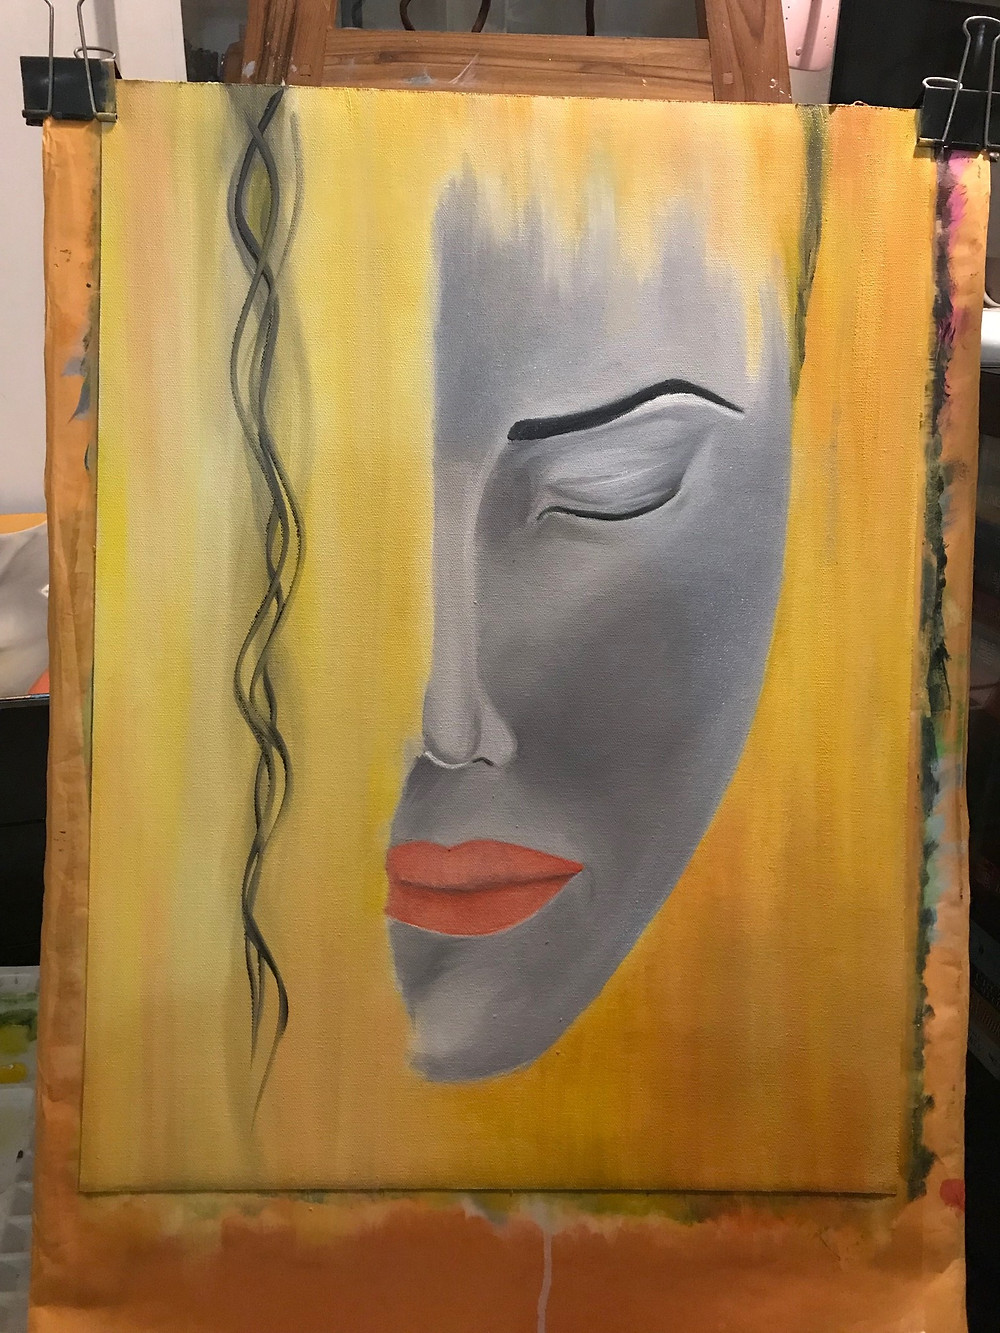 The completed painting called Awake by Leeza A. Harris